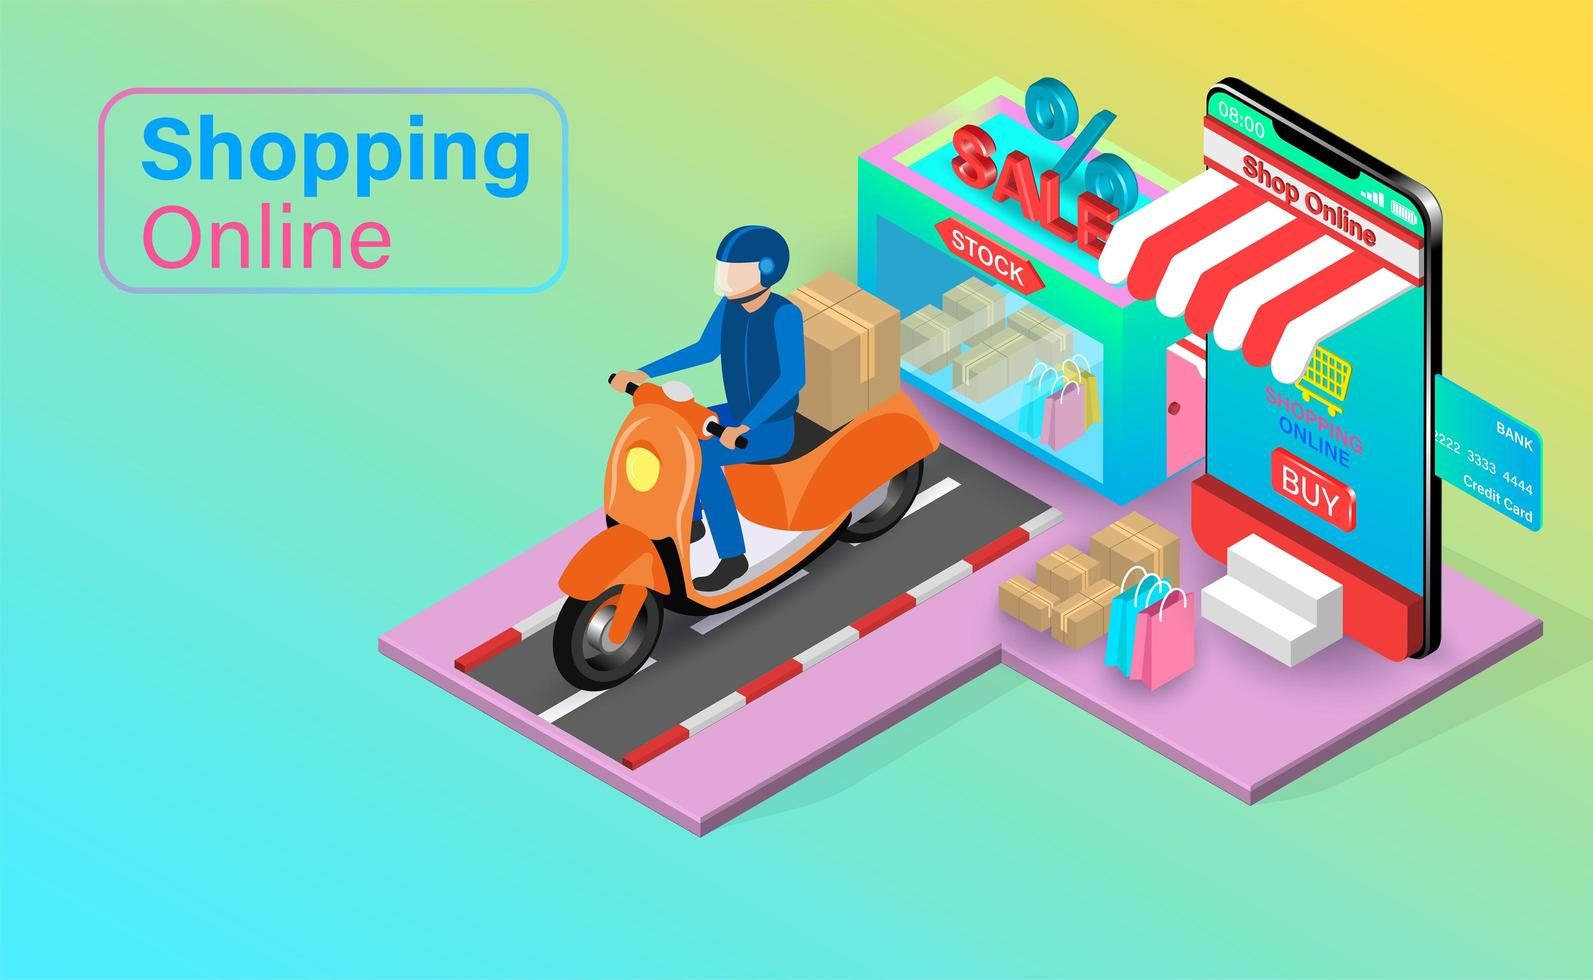 shopping online con consegna scooter vettore